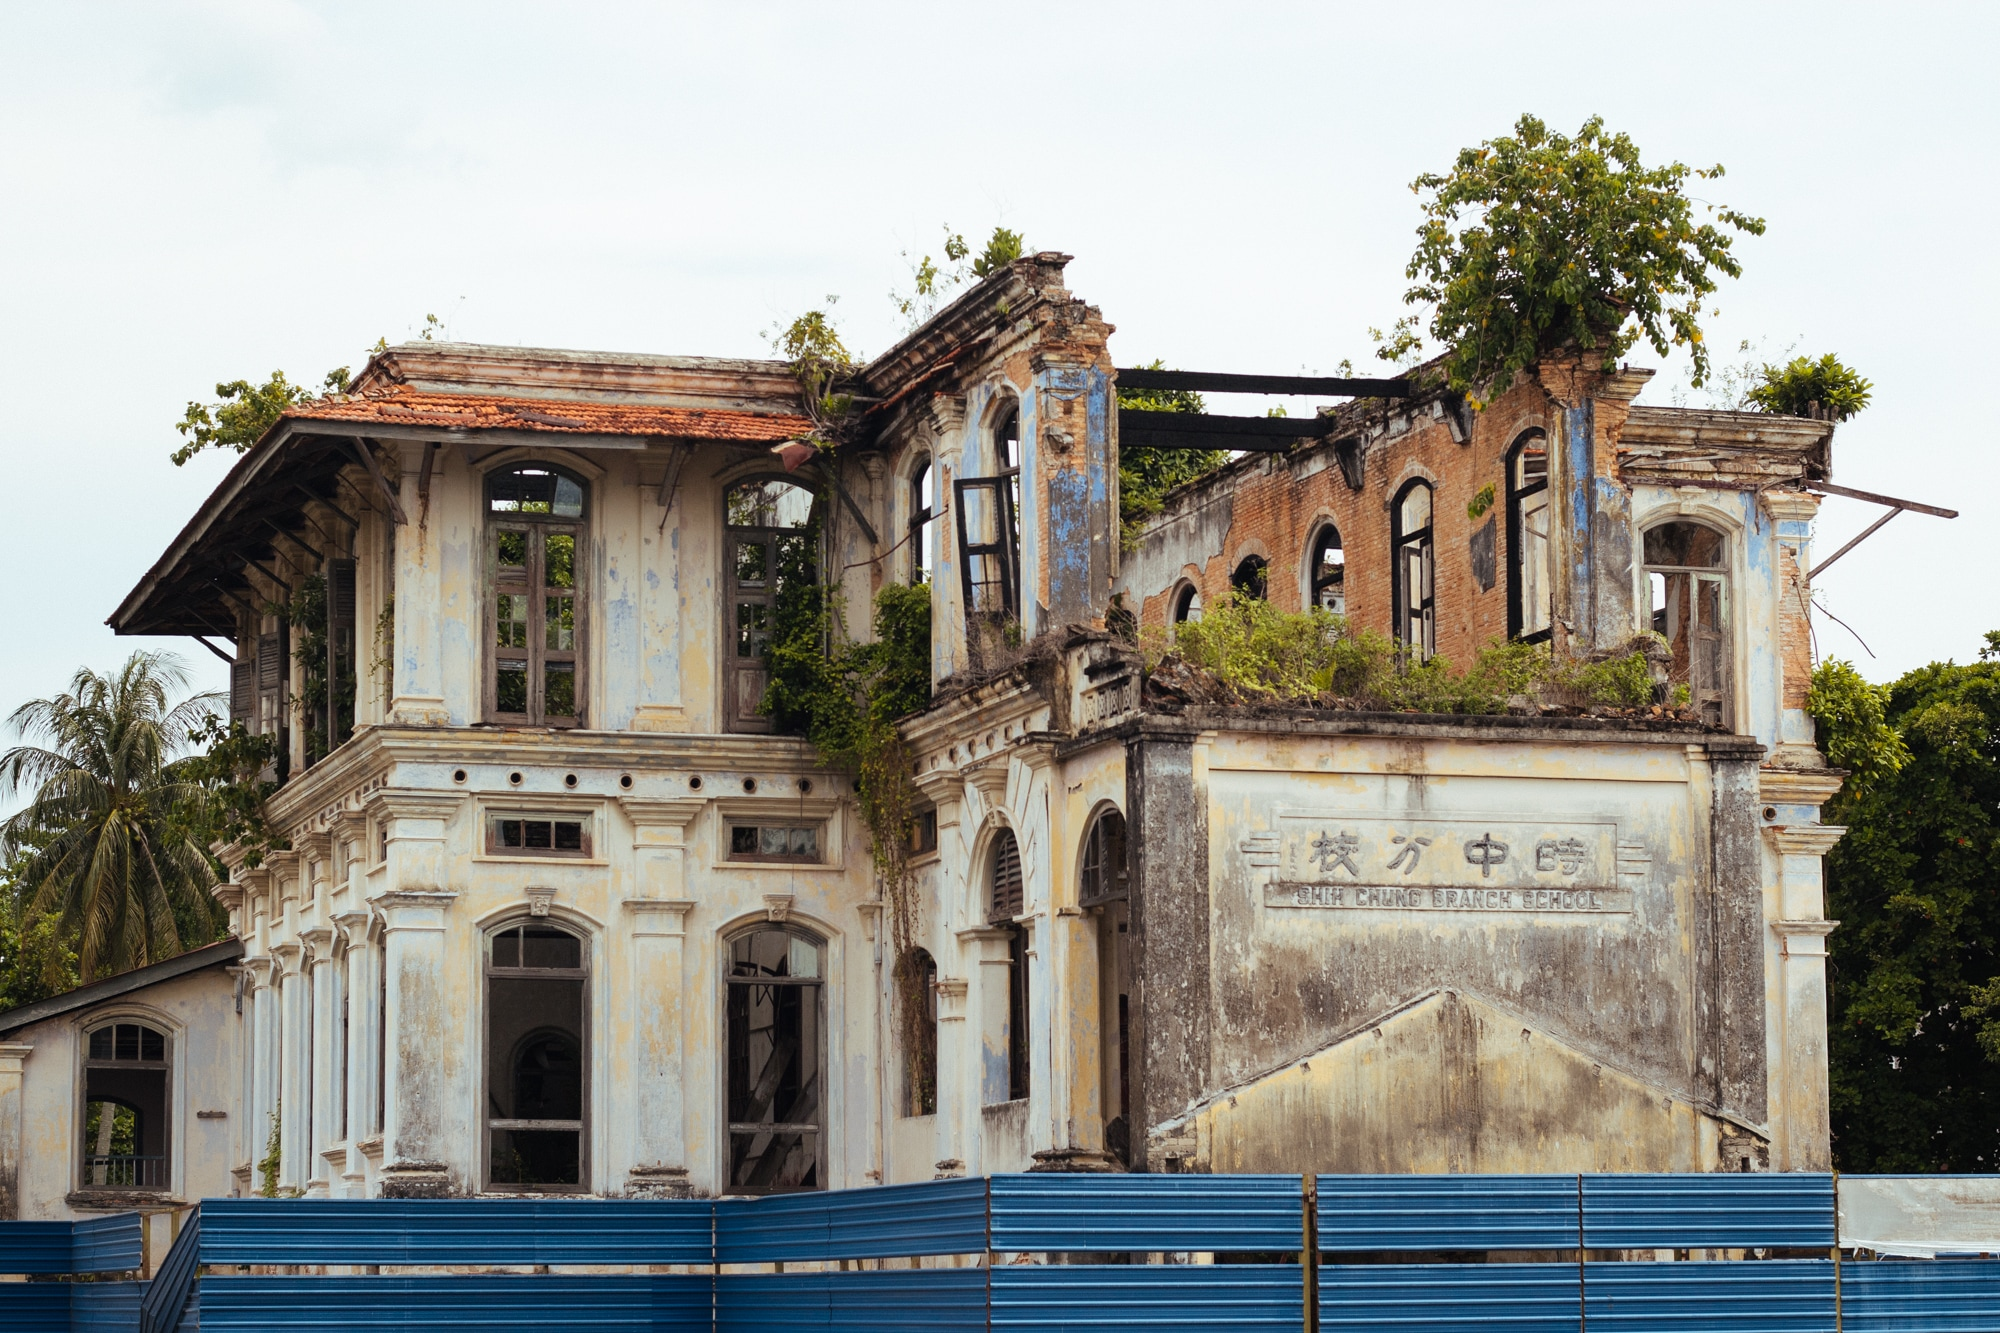 Abandoned building of Shih Chung Branch School in George Town, Penang